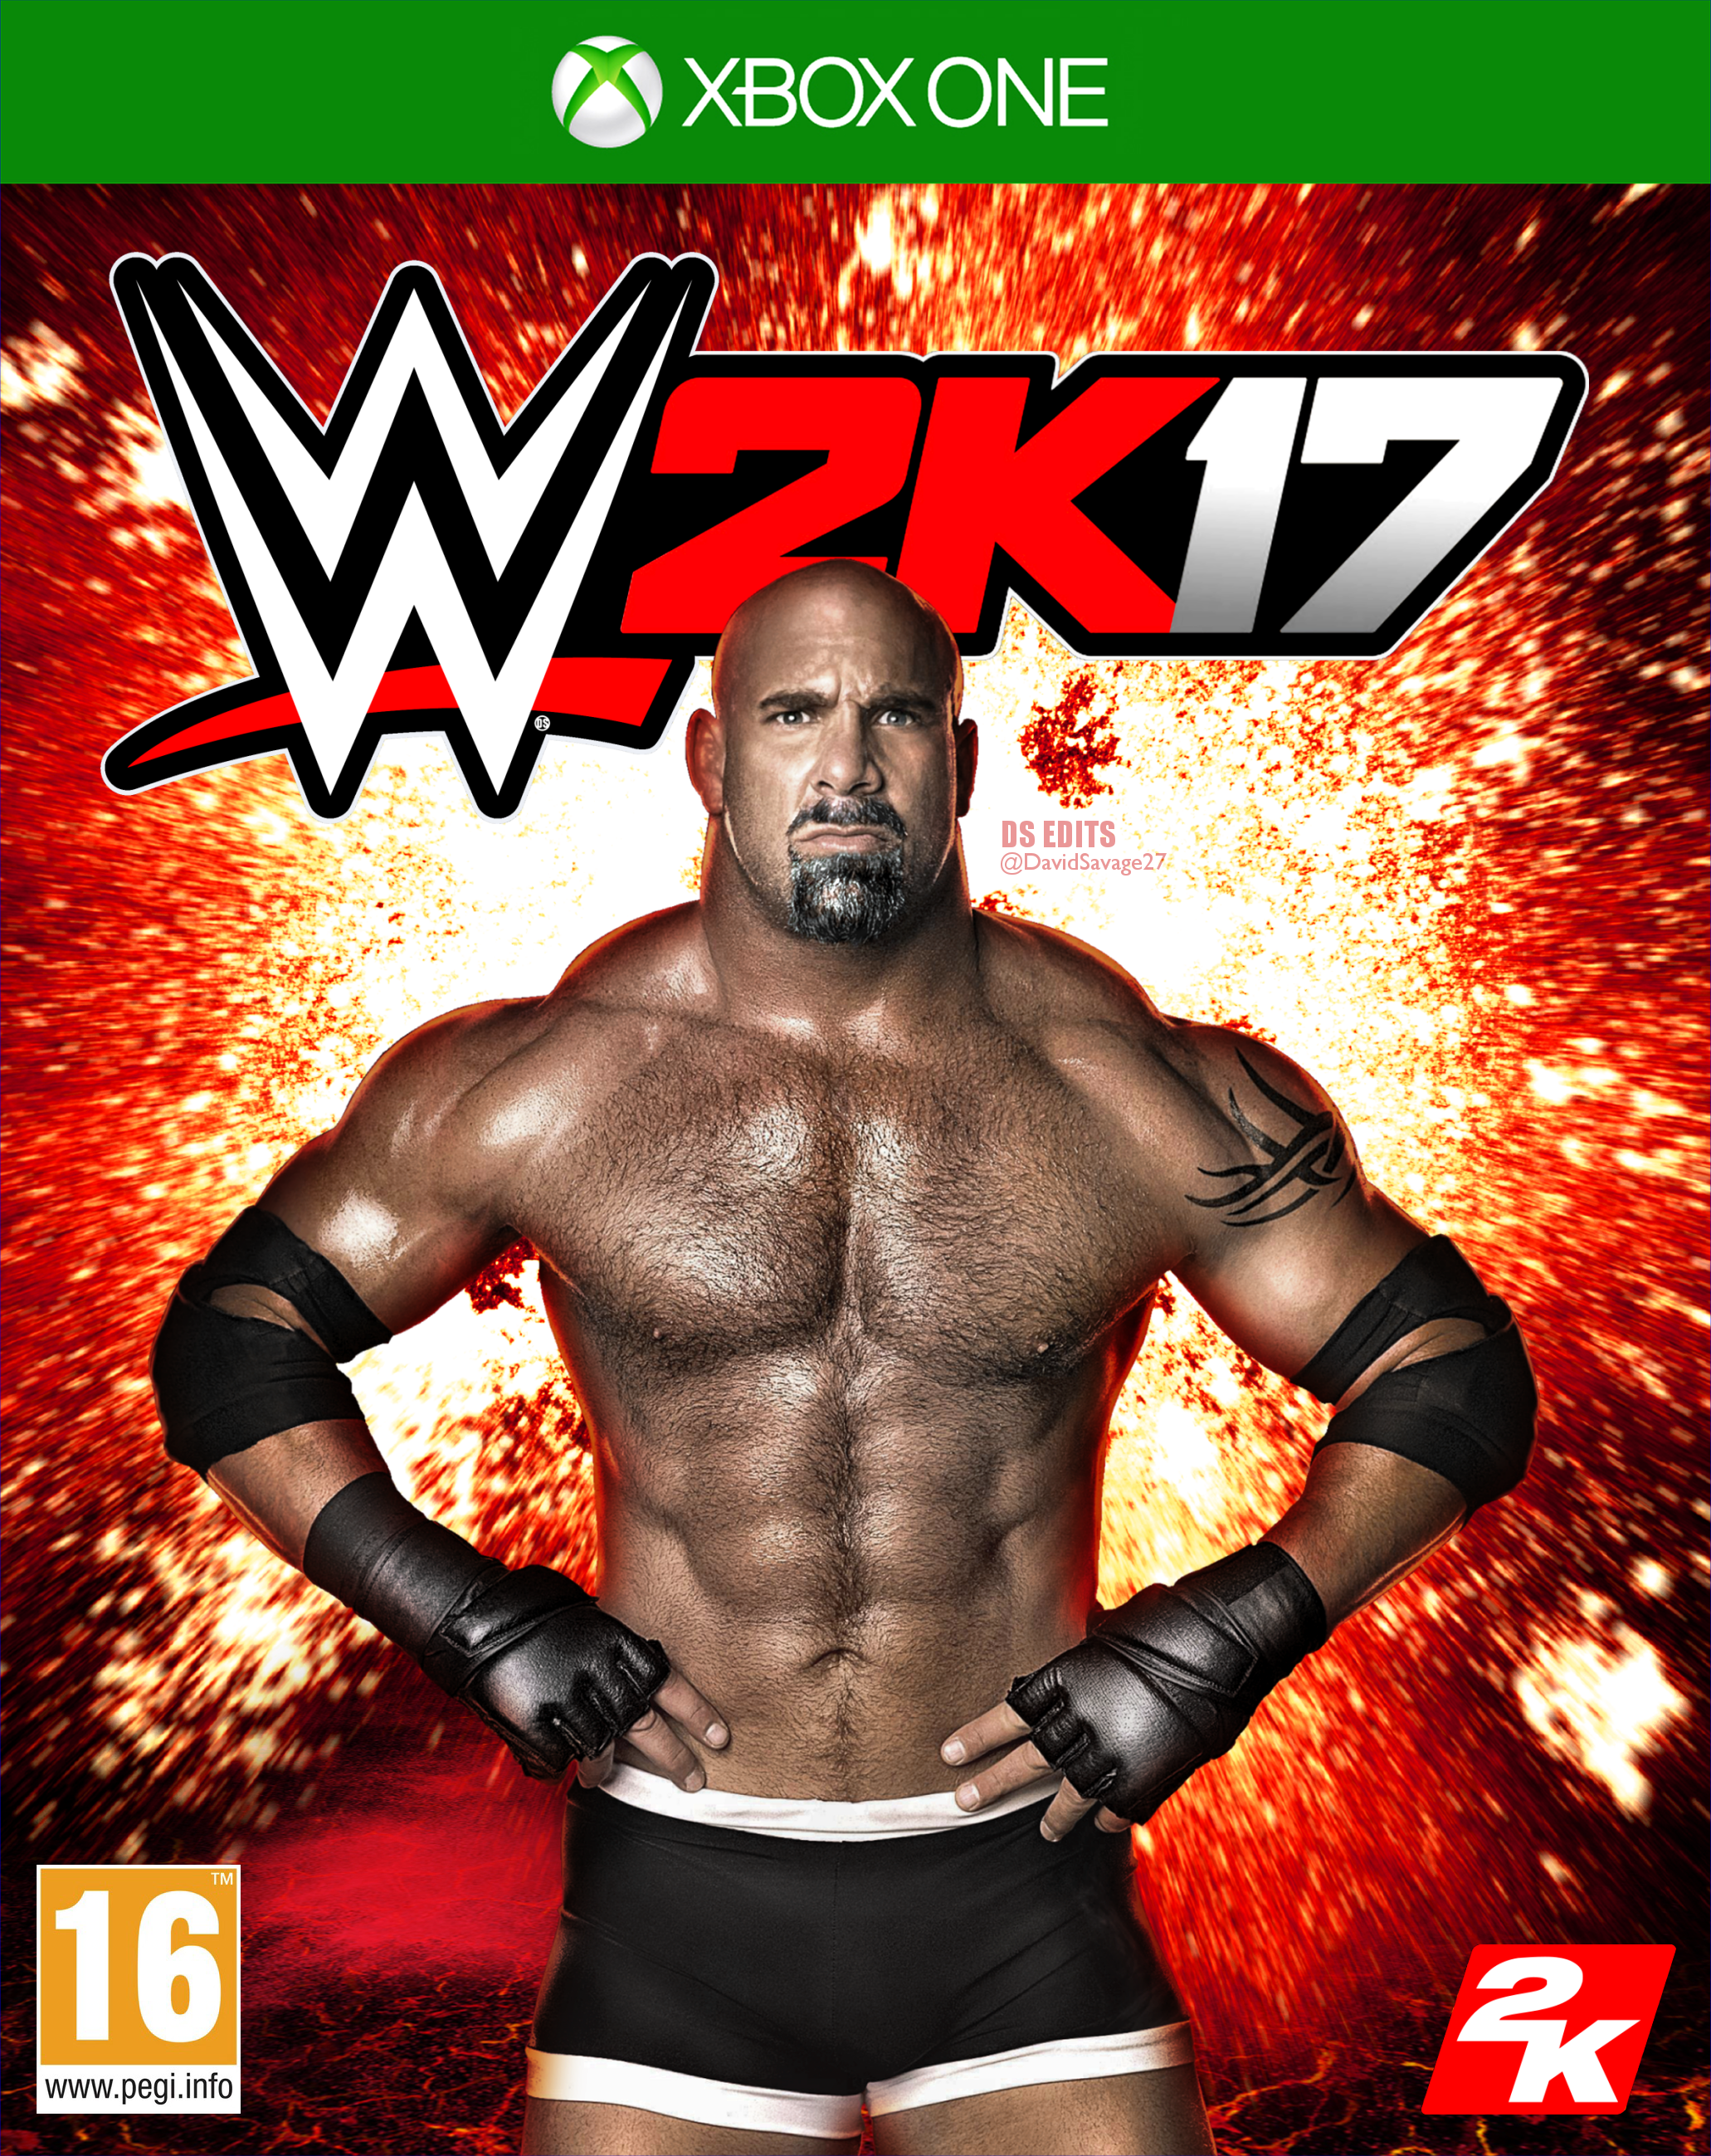 Book Cover Pictures Xbox One ~ Wwe k goldberg xbox one cover by ultimate savage on